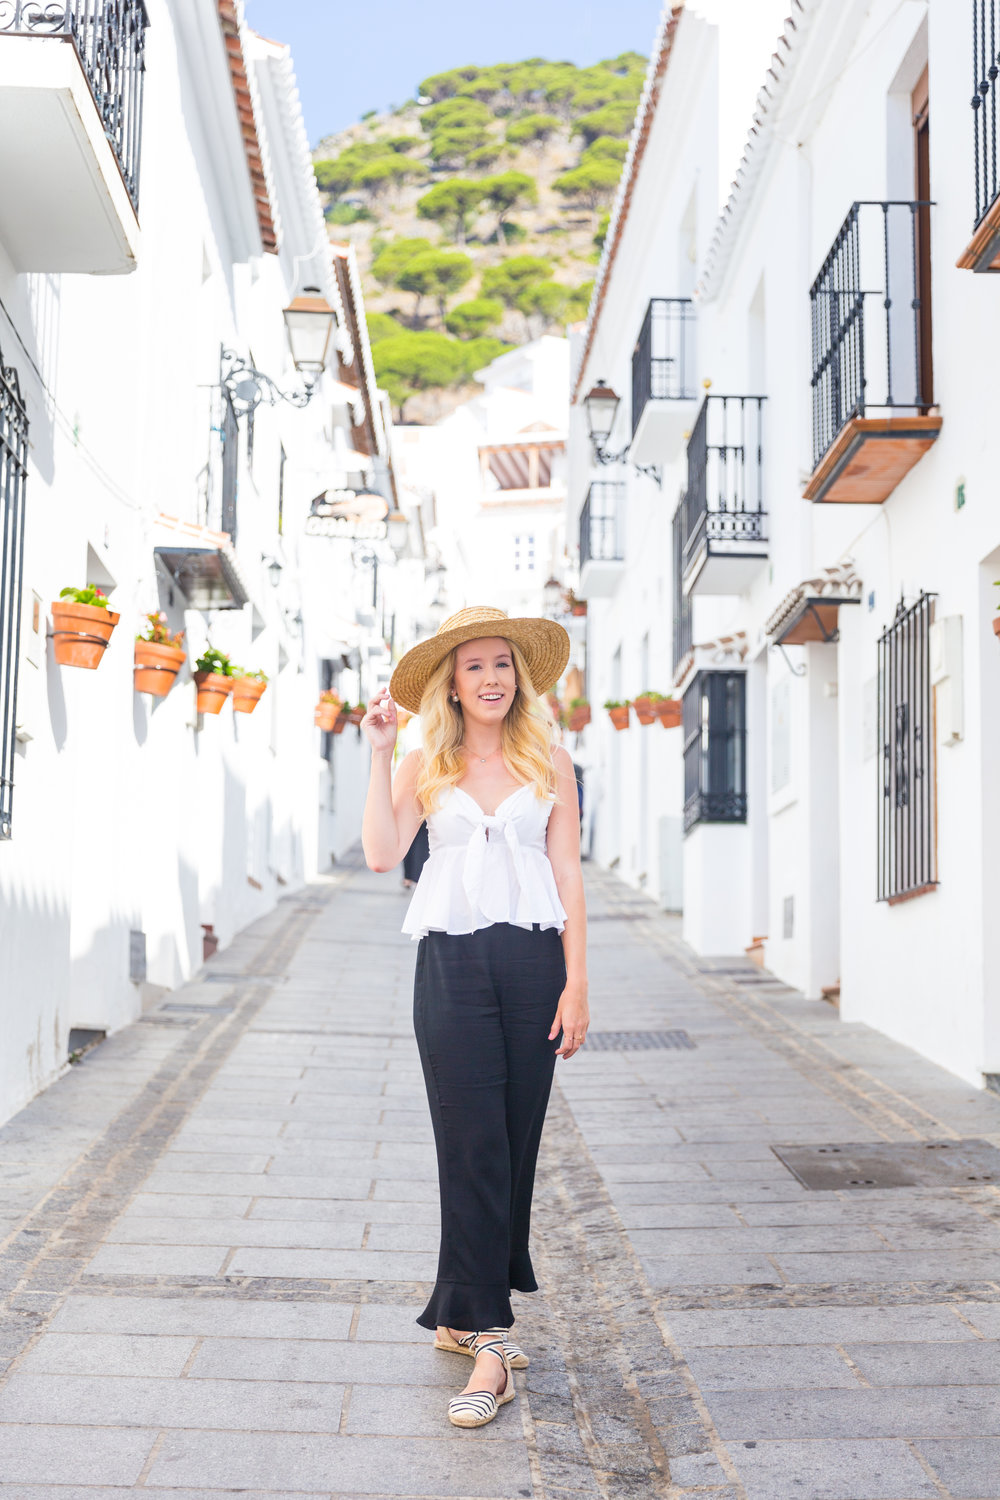 Spain Mijas Malaga Black and White Summer Fashion Flare-3.jpg